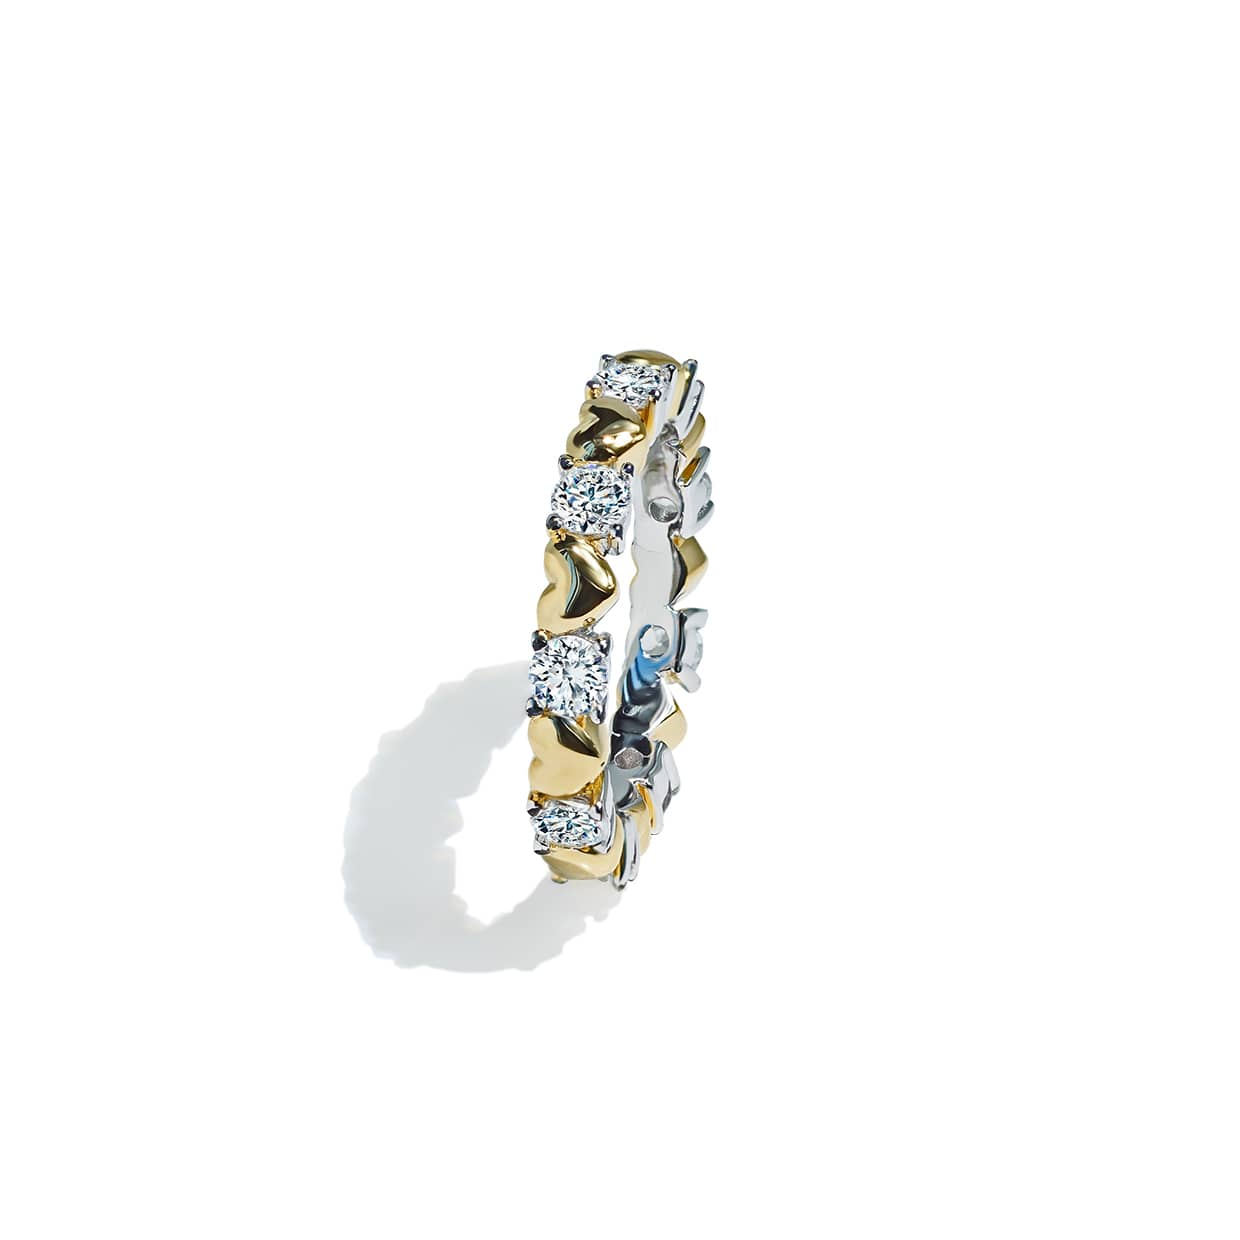 Loving Gold Ring - Abelstedt